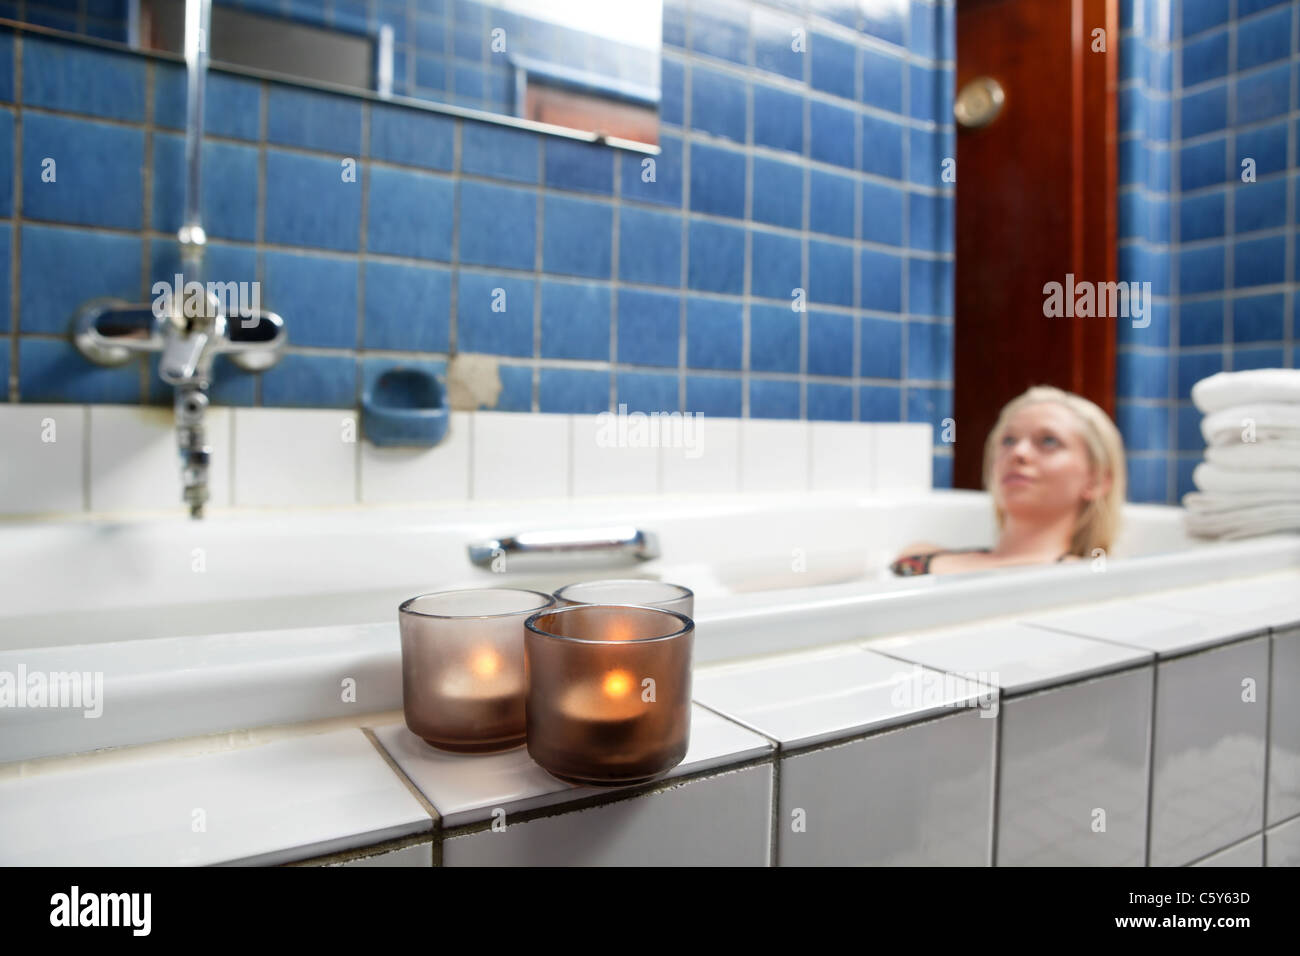 Woman Bath Relax Candles Stock Photos & Woman Bath Relax Candles ...